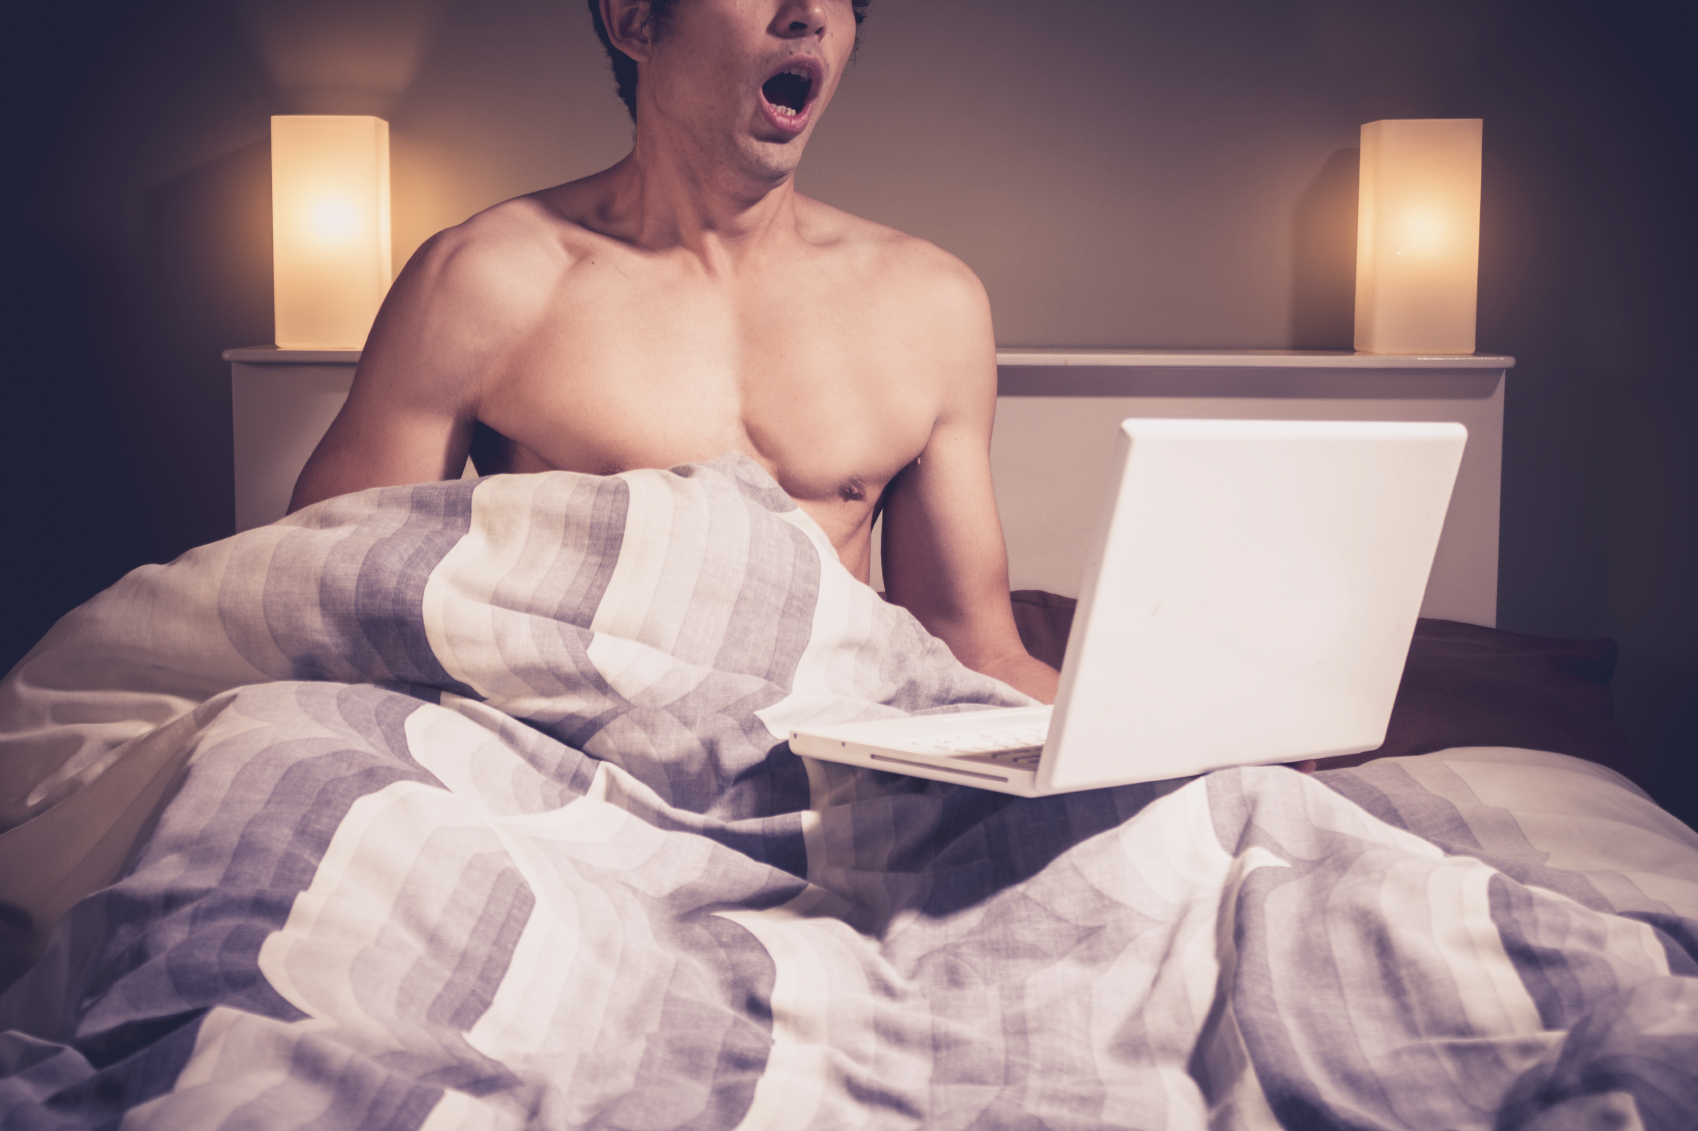 Men Who Watch More Porn Are Unlikely To Have Sex Without Condoms, Confirms Research